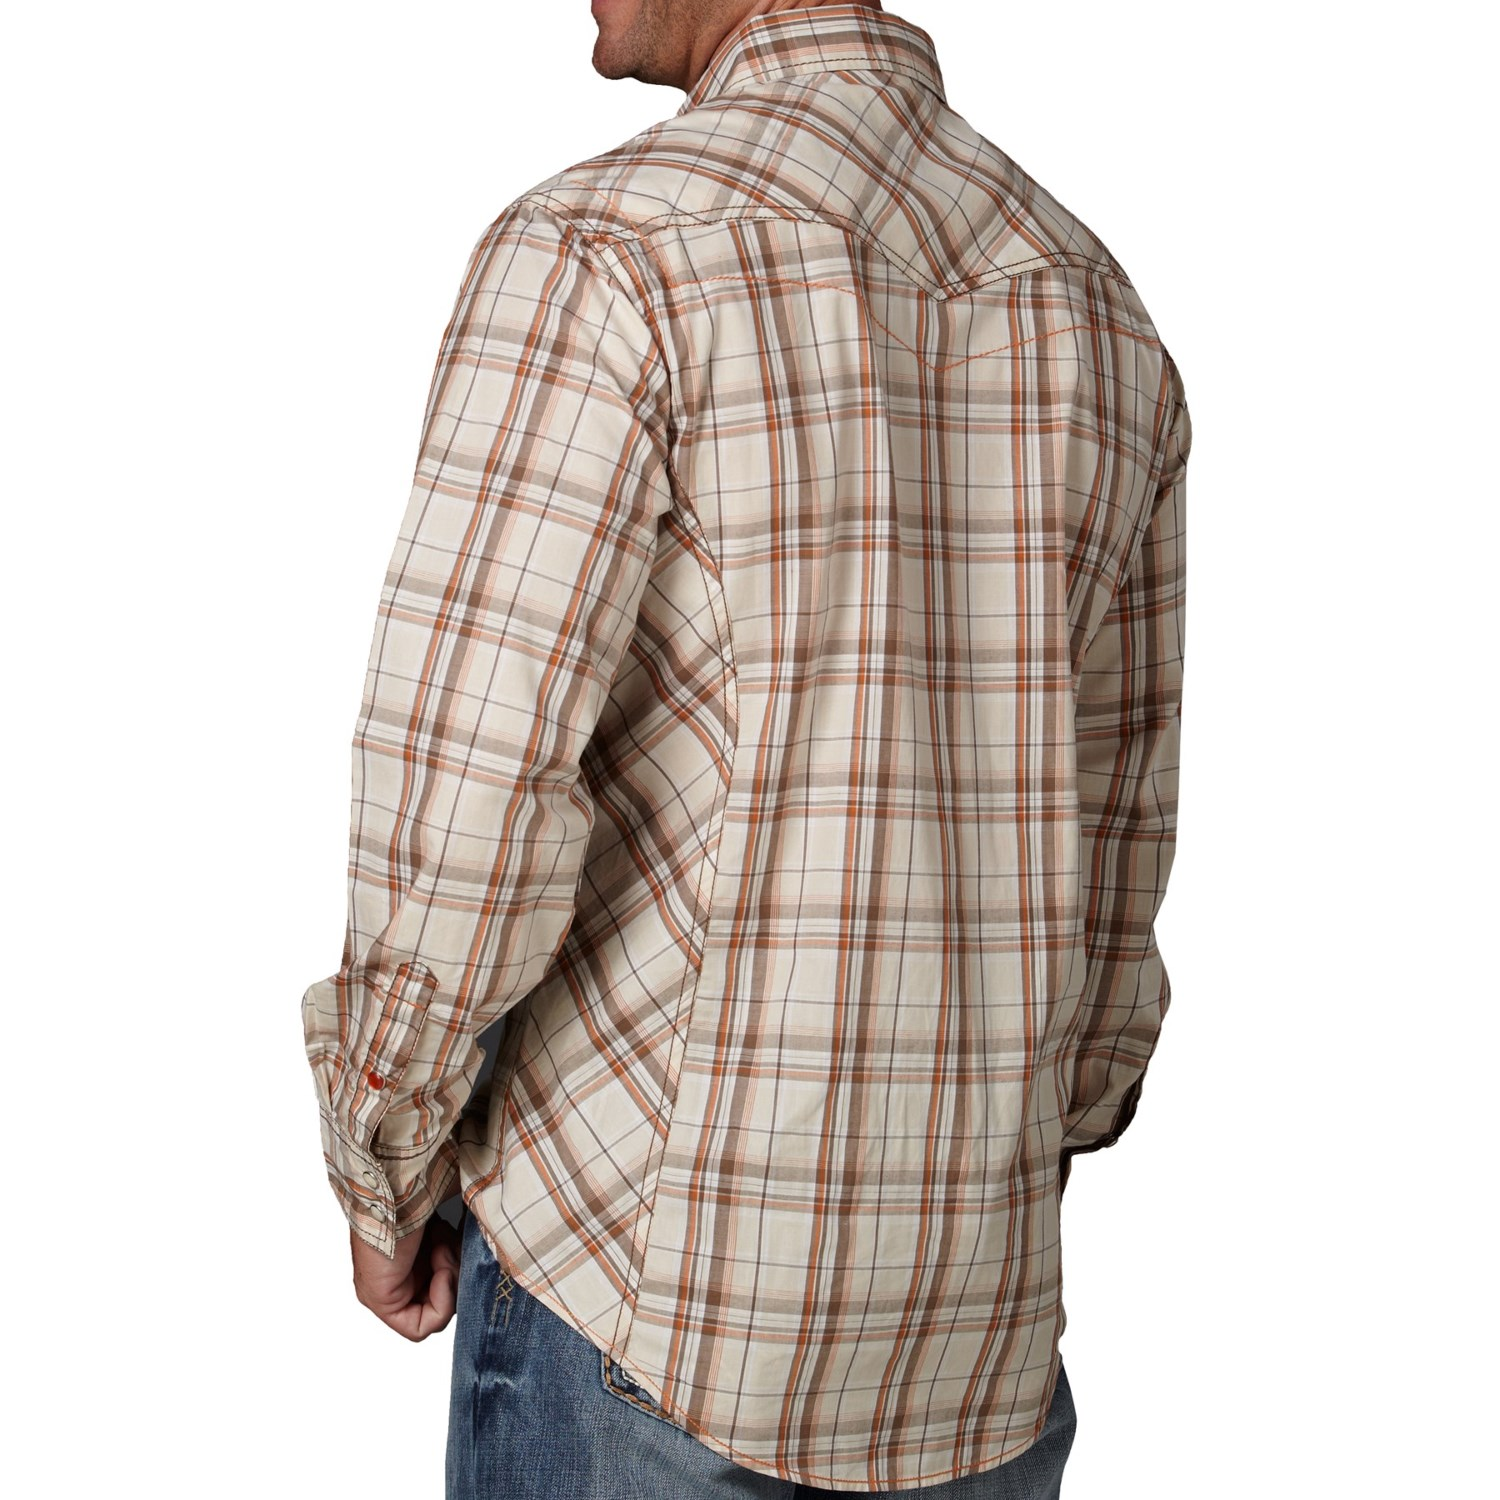 Cowboy up plaid shirt for men 7104f save 76 for Plaid shirt long sleeve